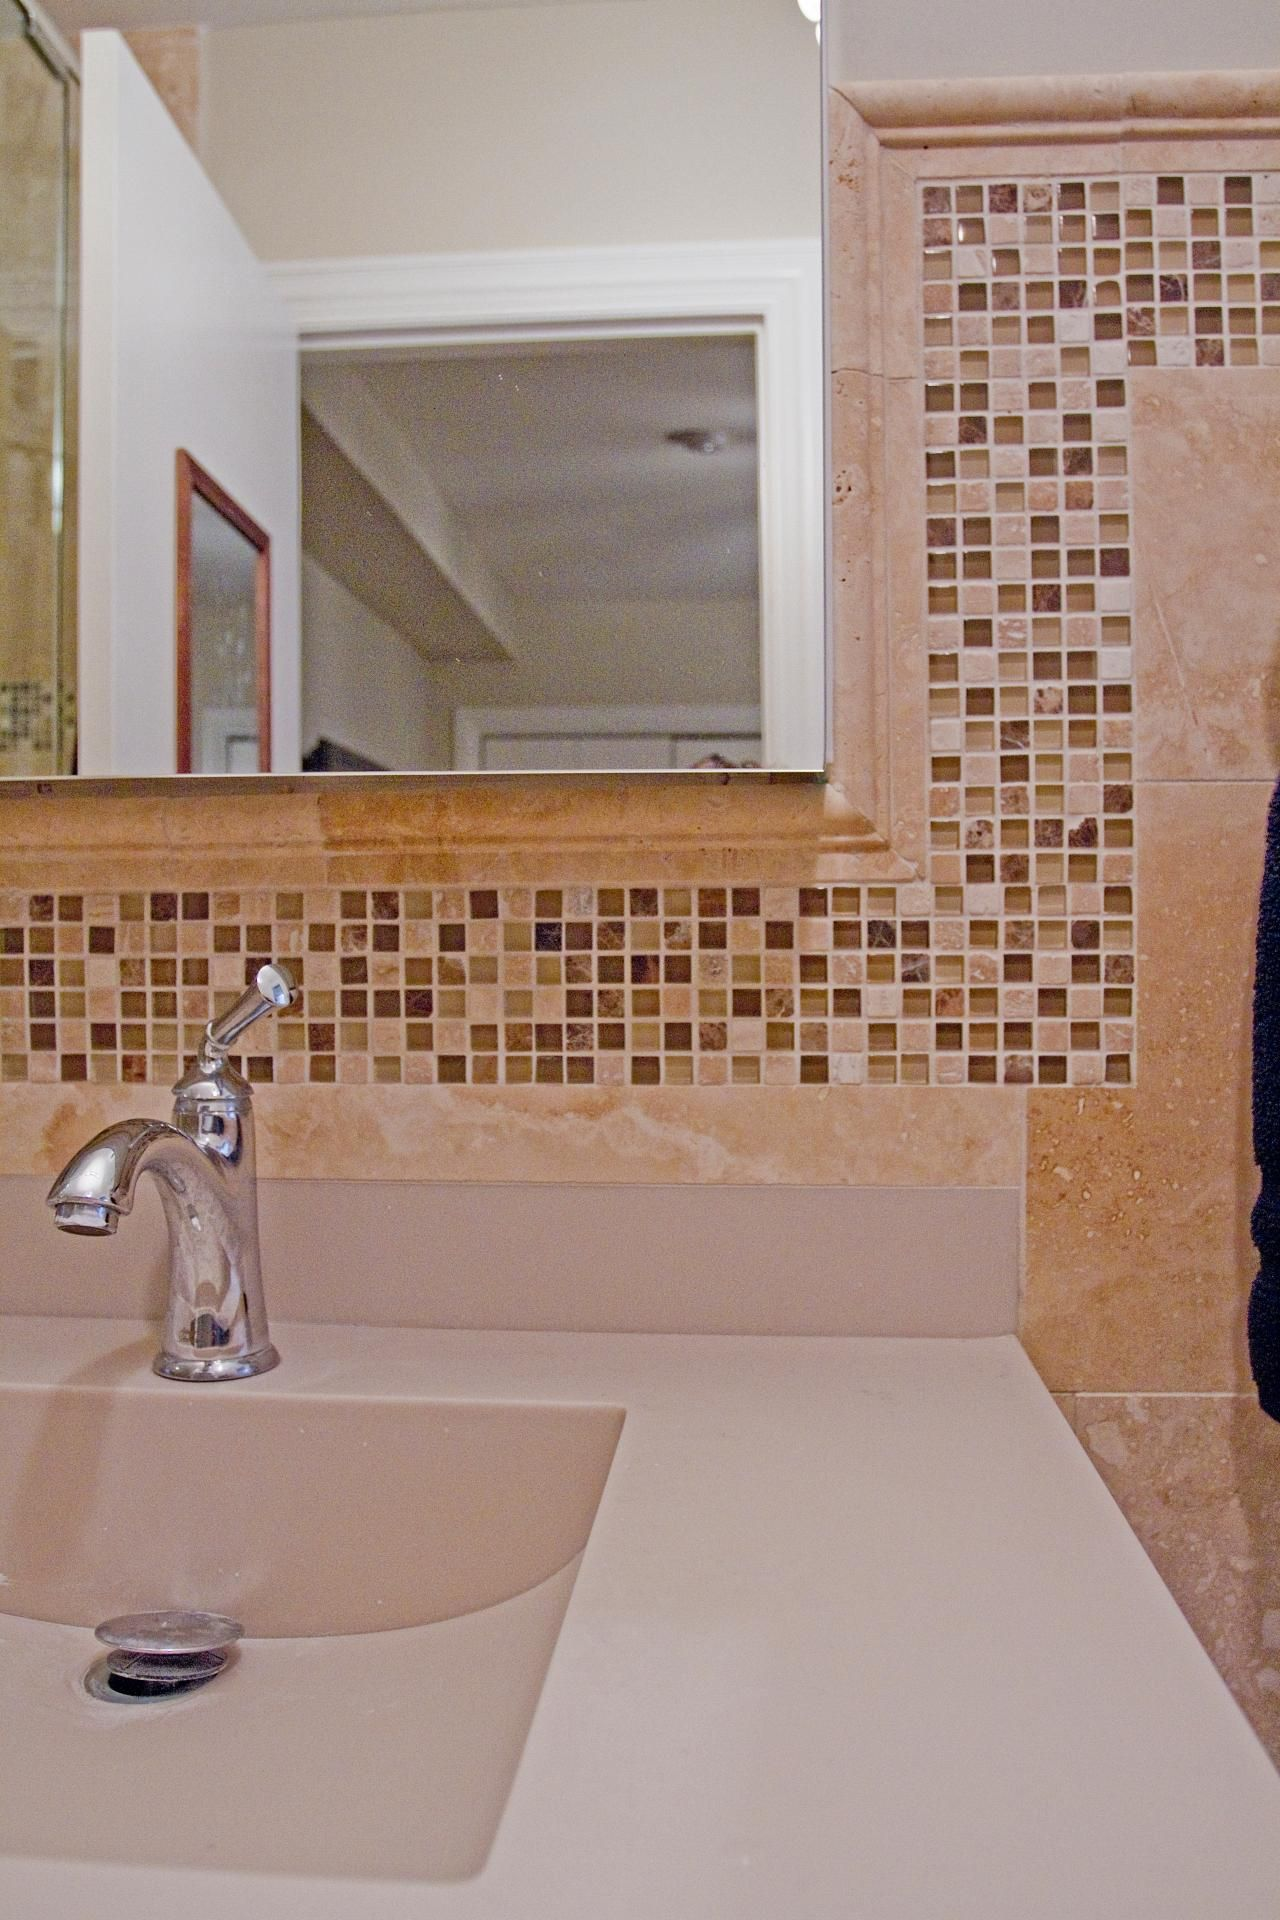 Mosaic tiles flow throughout the bathroom creating a